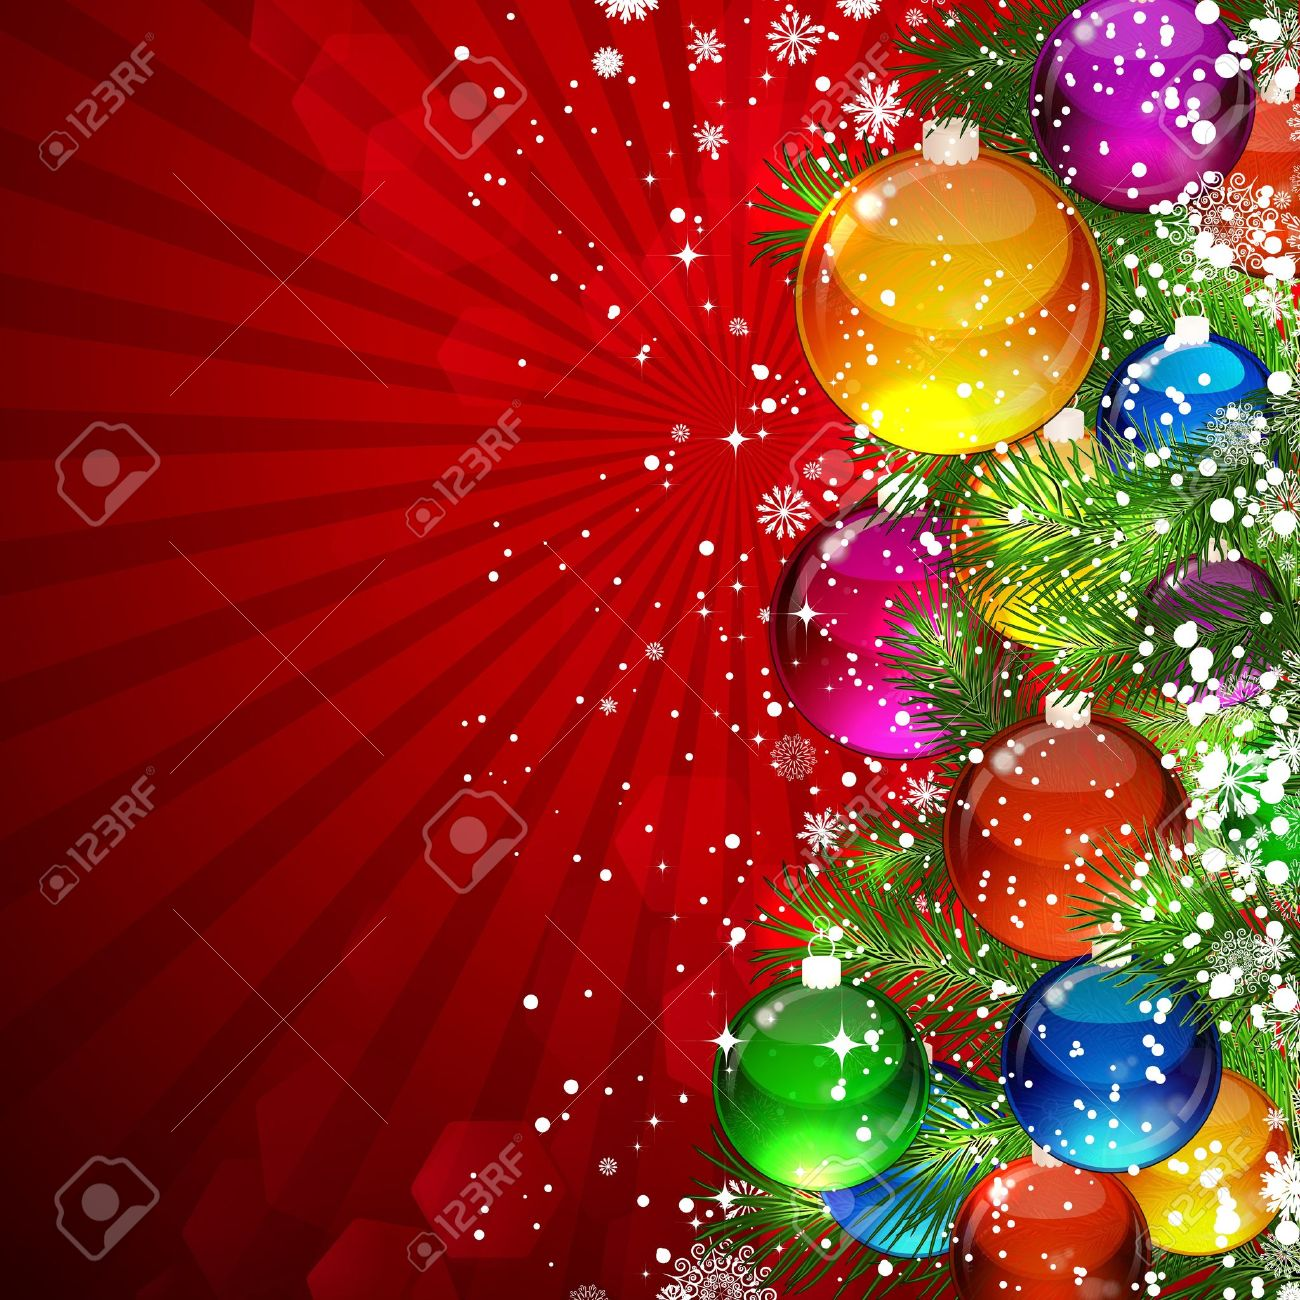 Christmas background with snow-covered Christmas tree decorated with glass balls Stock Vector - 9721861